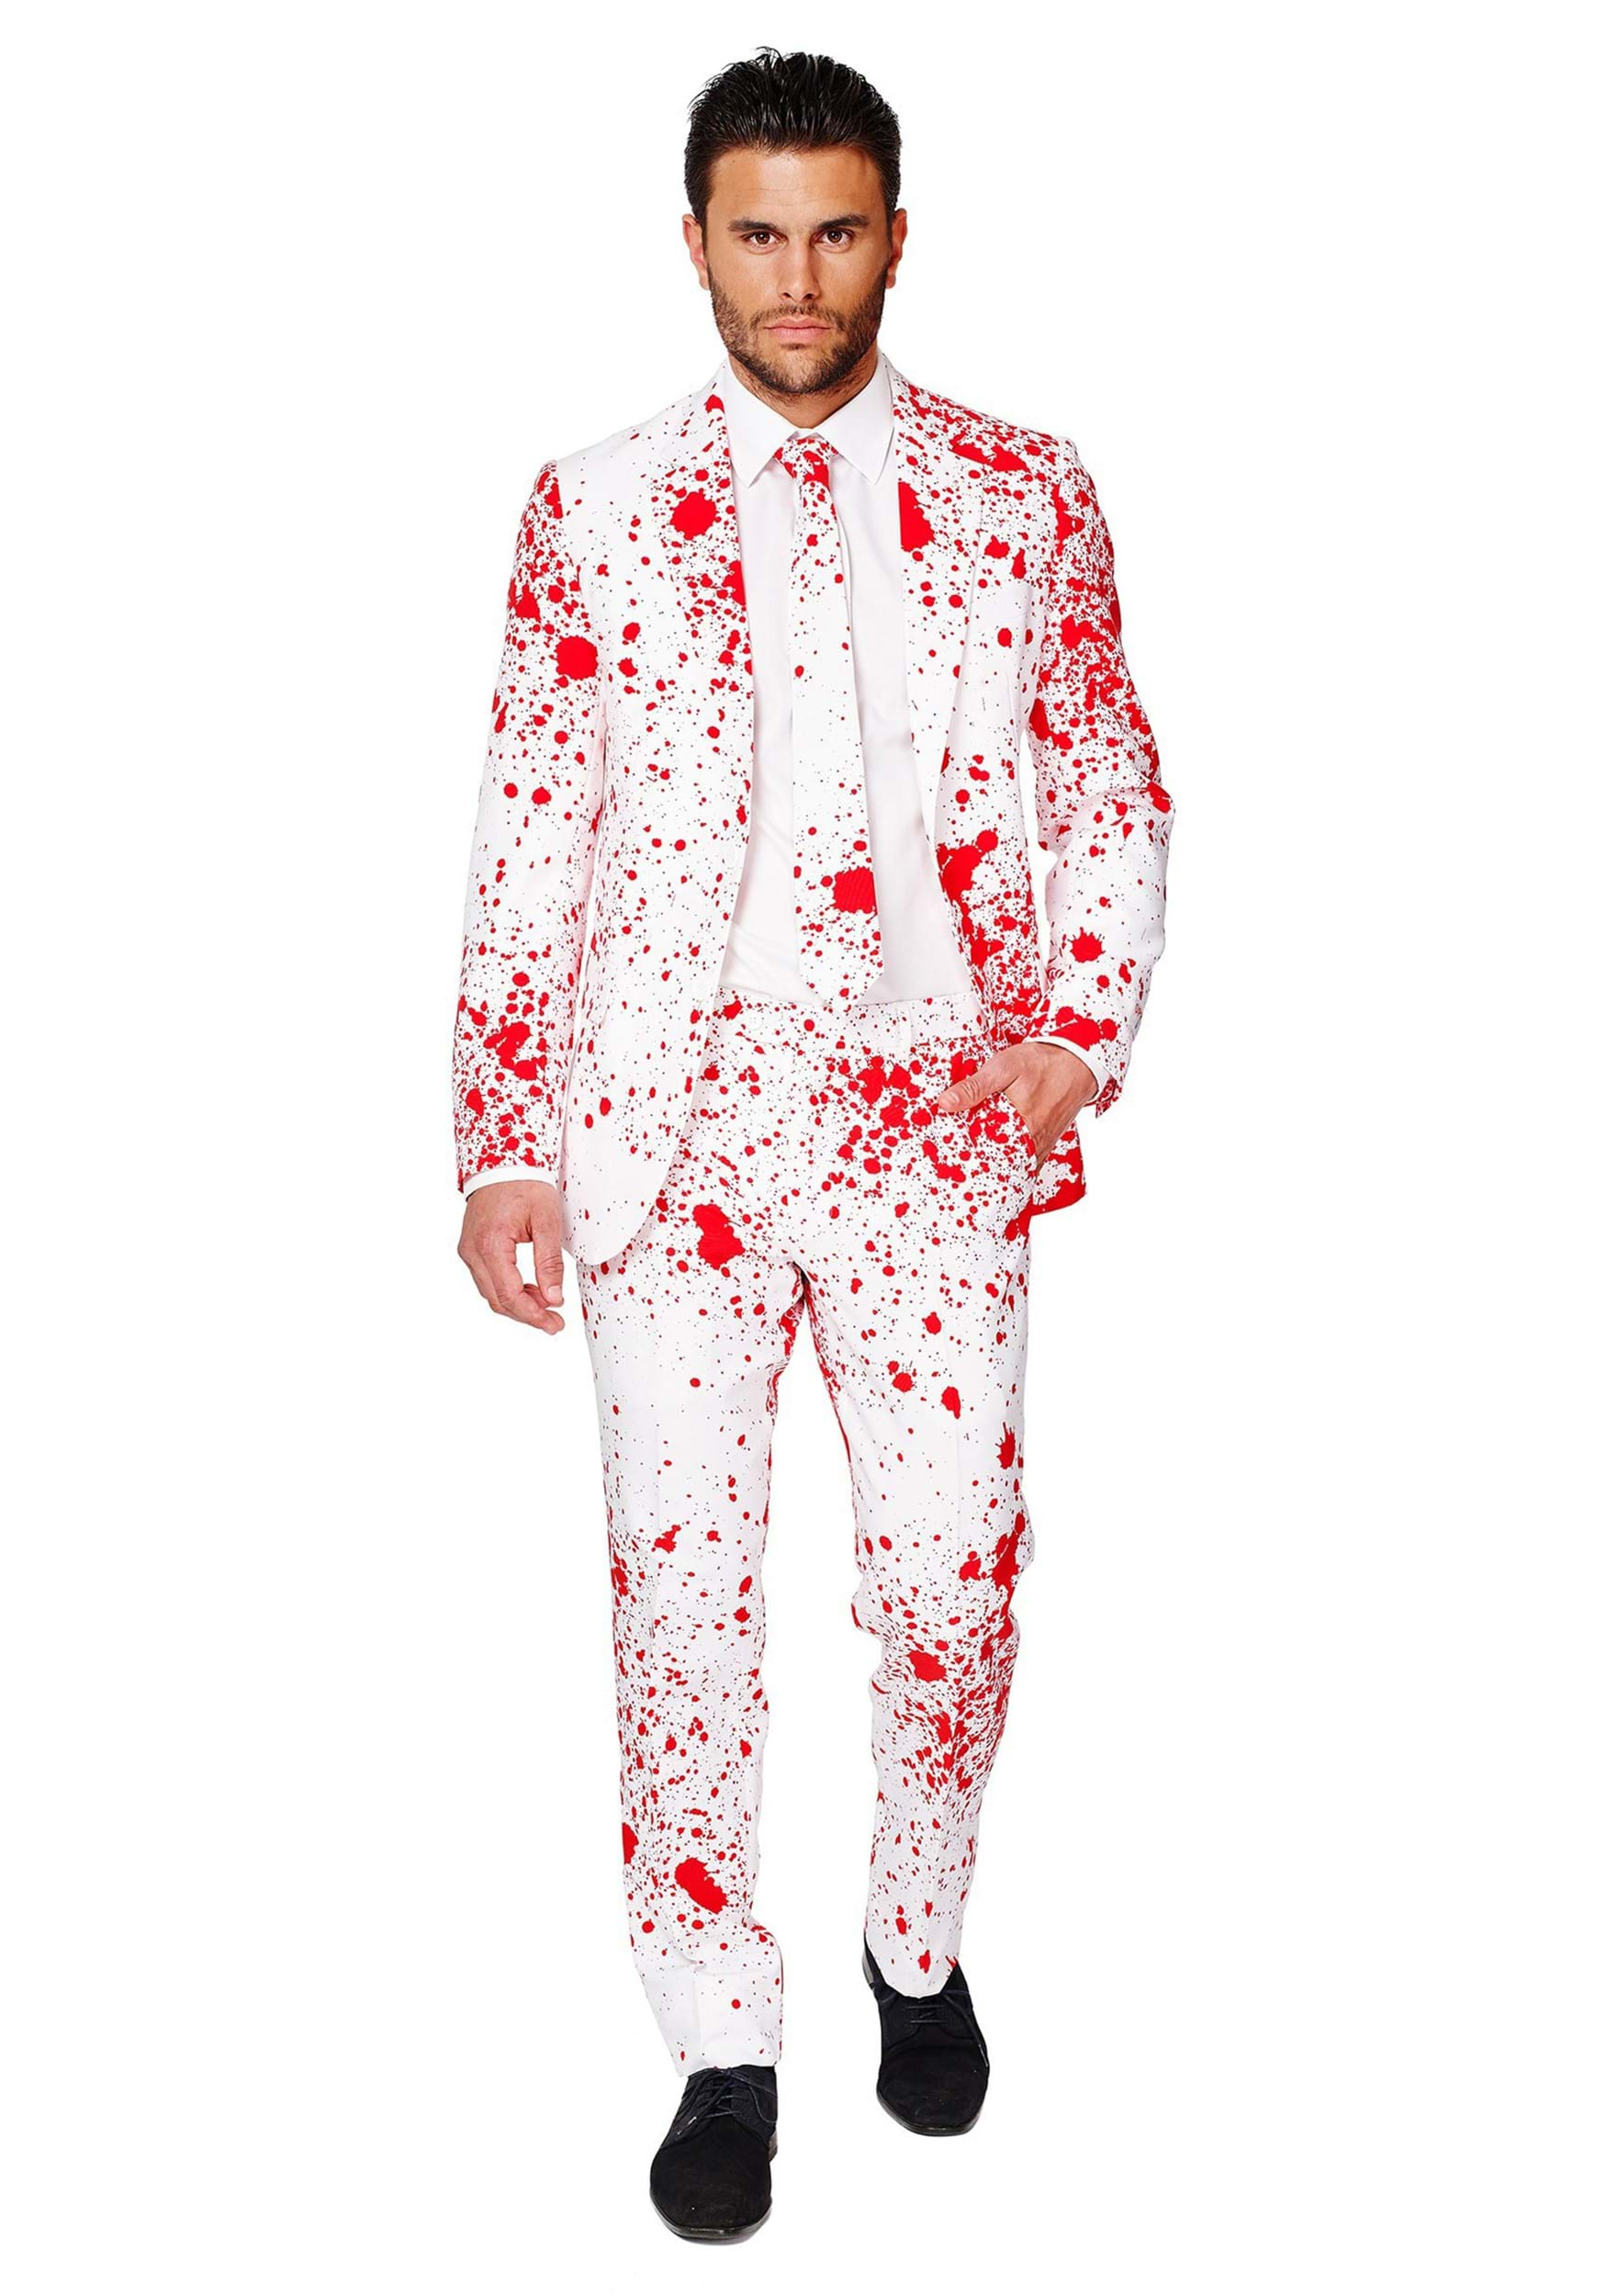 6c28890a13c Opposuits Bloody Suit for Men